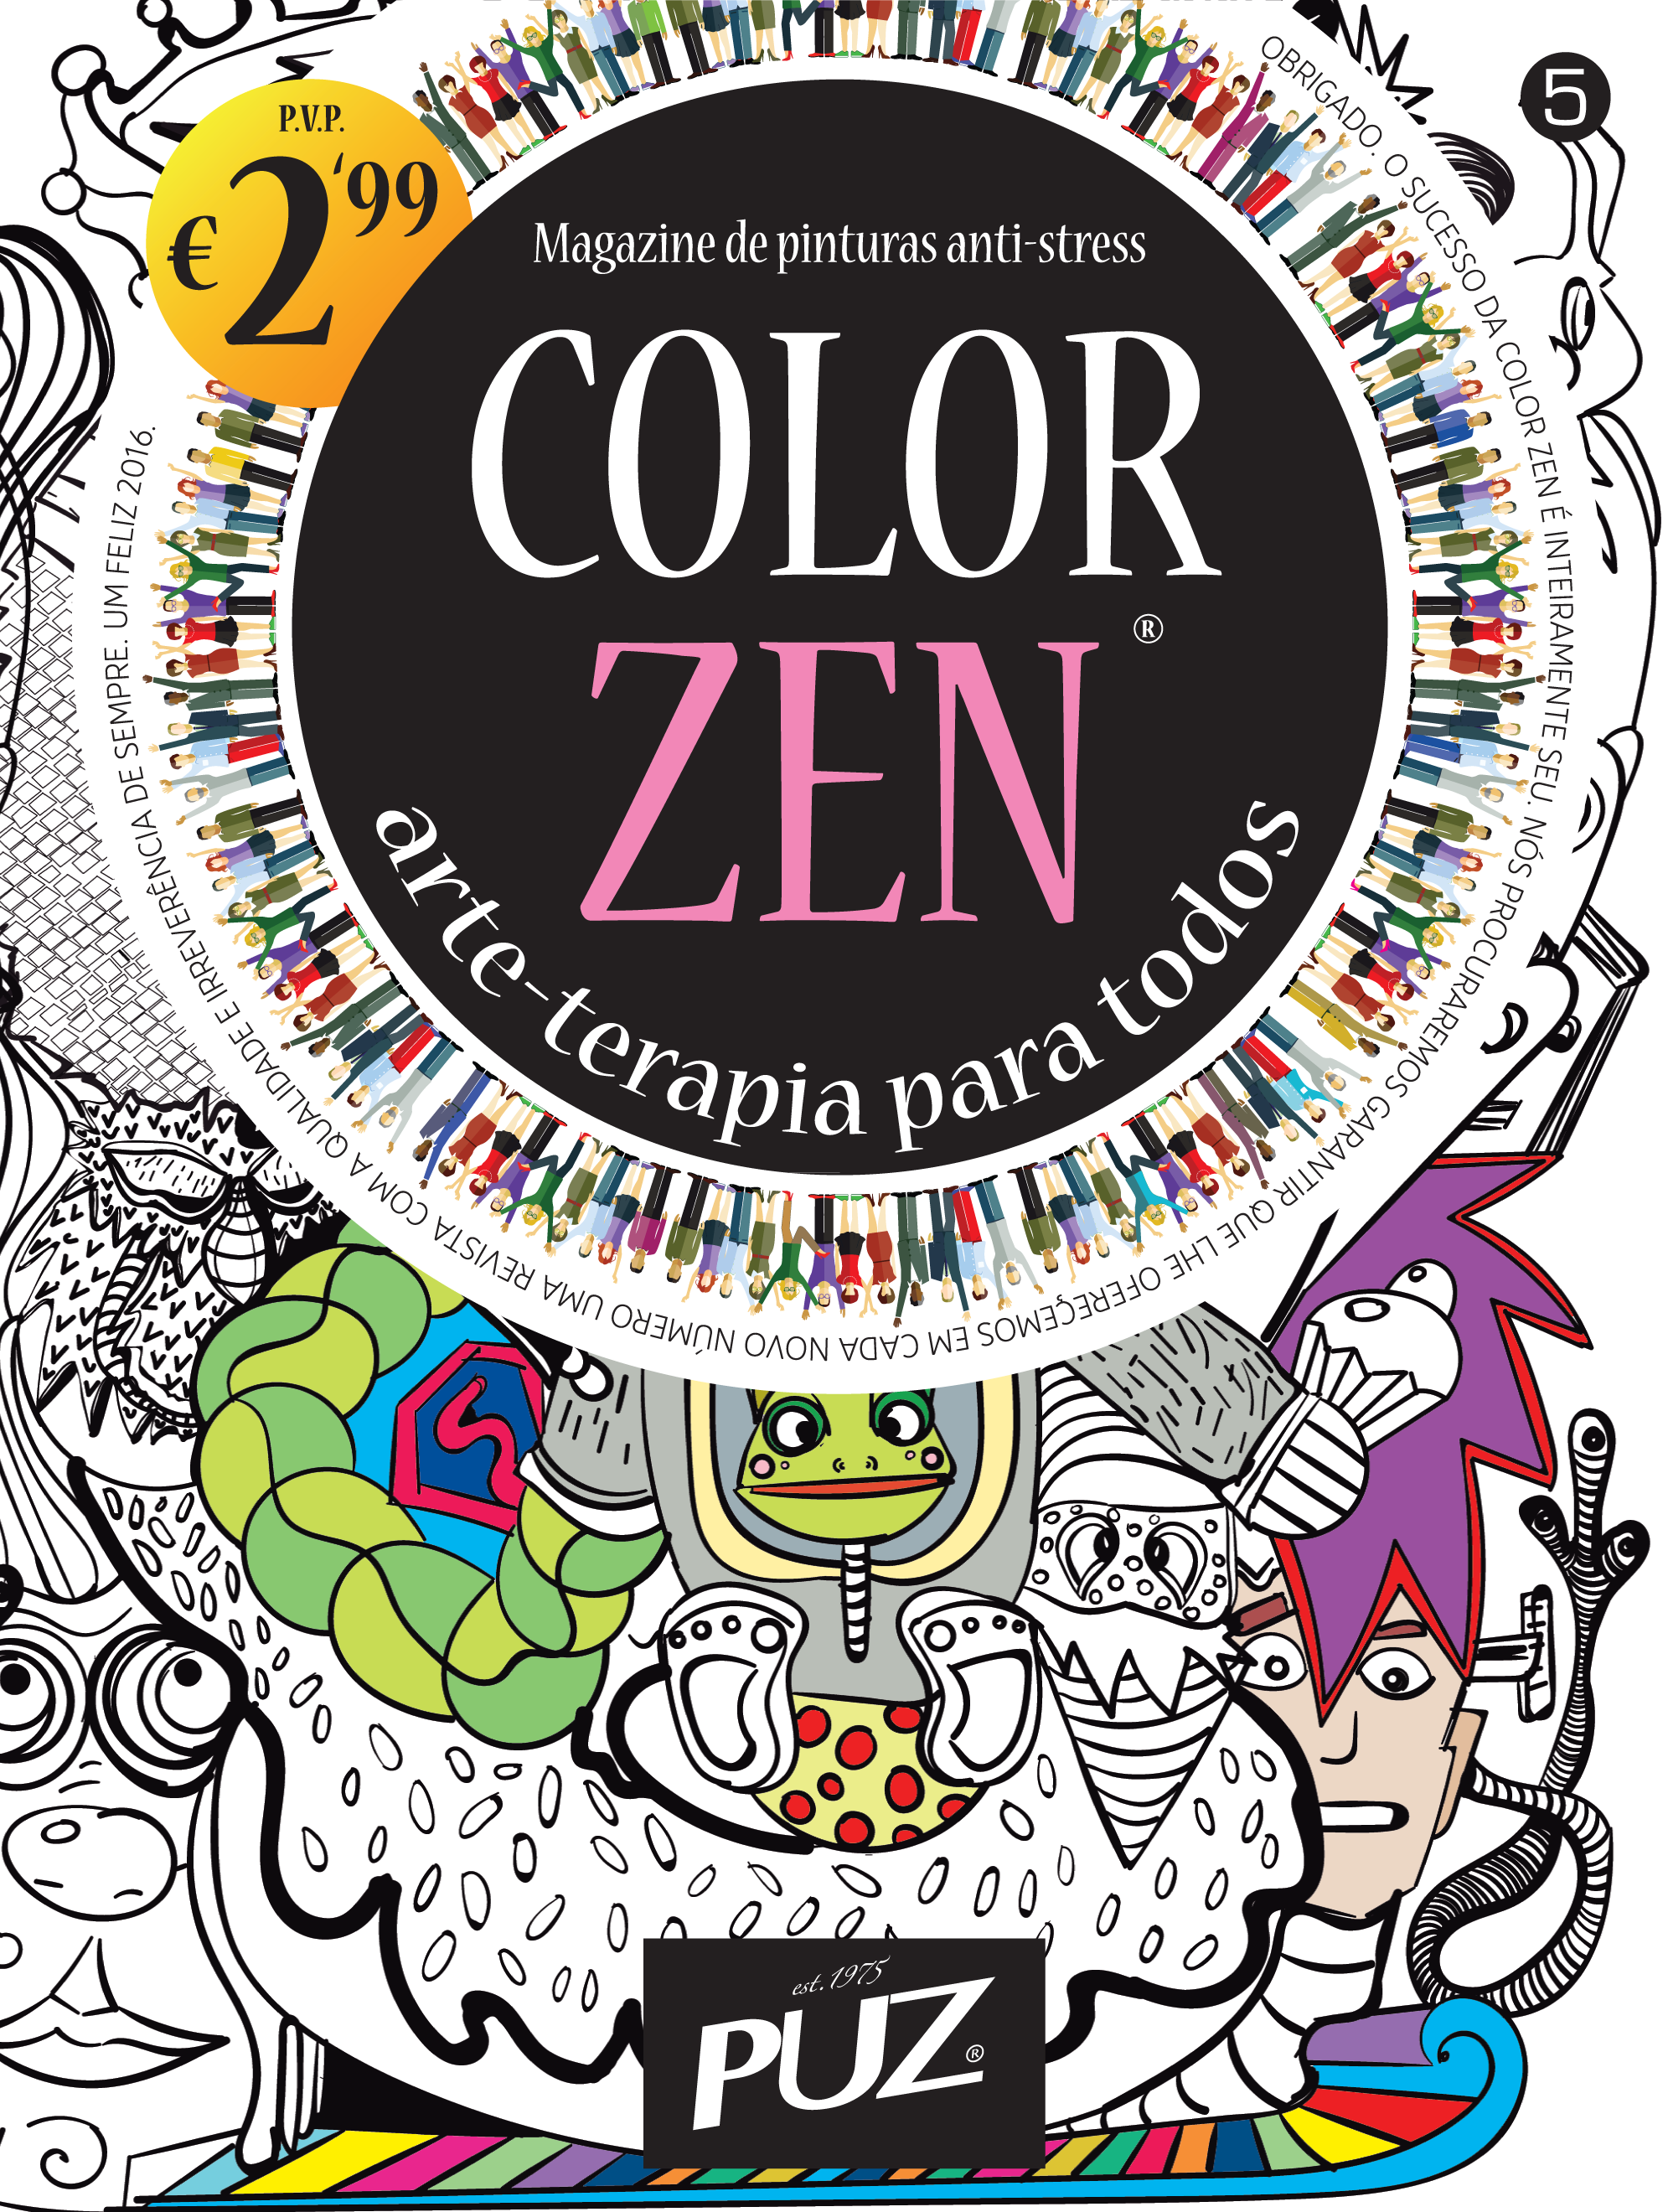 Color zen magazine - Color Zen Nr 5 Magazine De Pinturas Anti Stress Da Puz Arte